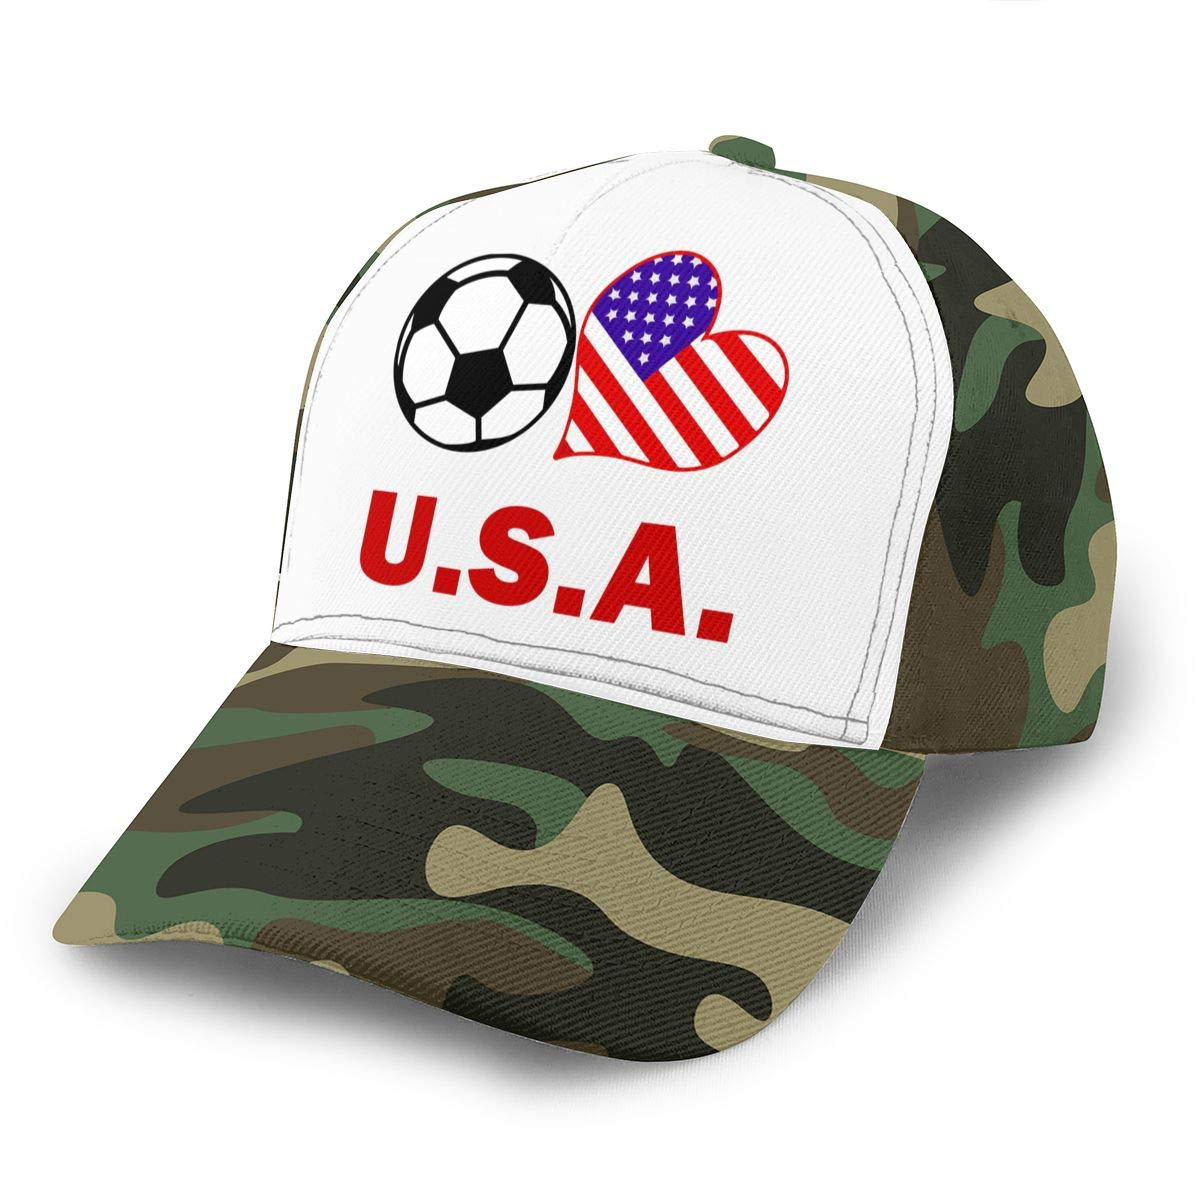 Soccer Heart Football U.S.A Flag Peaked Cap for Mens and Womens Cotton Cricket Cap